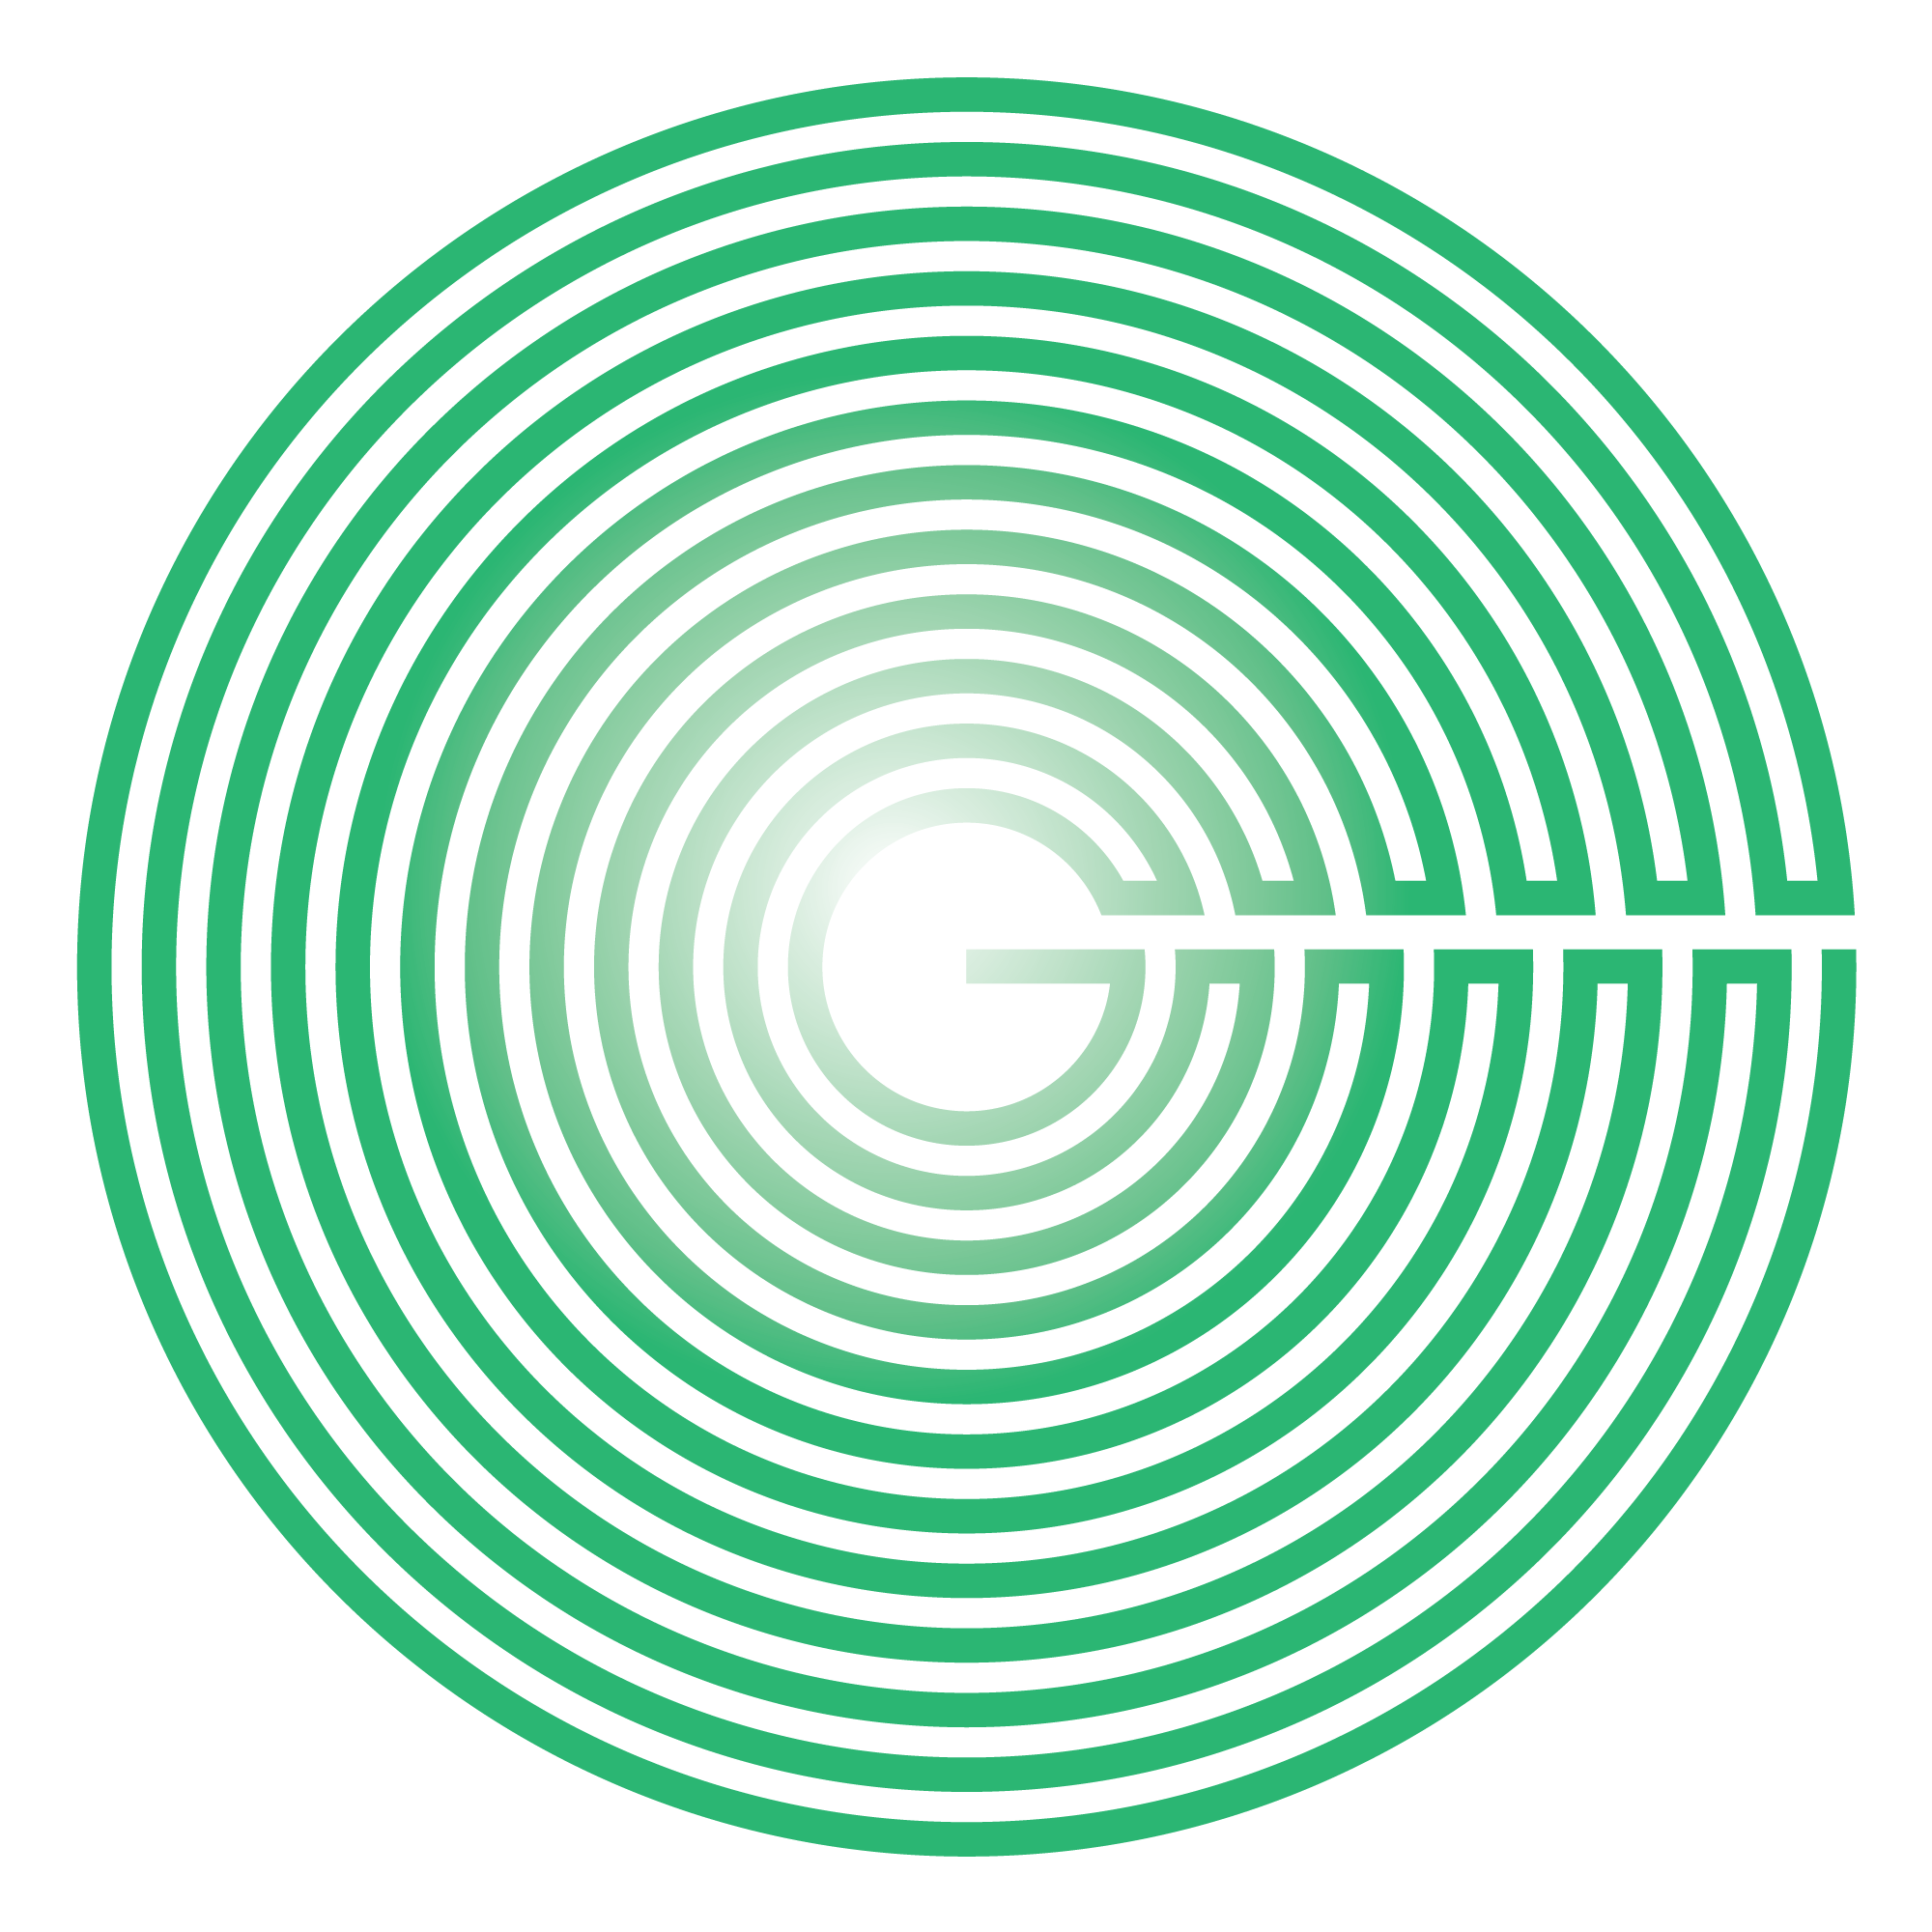 G-Physiotherapy circles Logo as background image